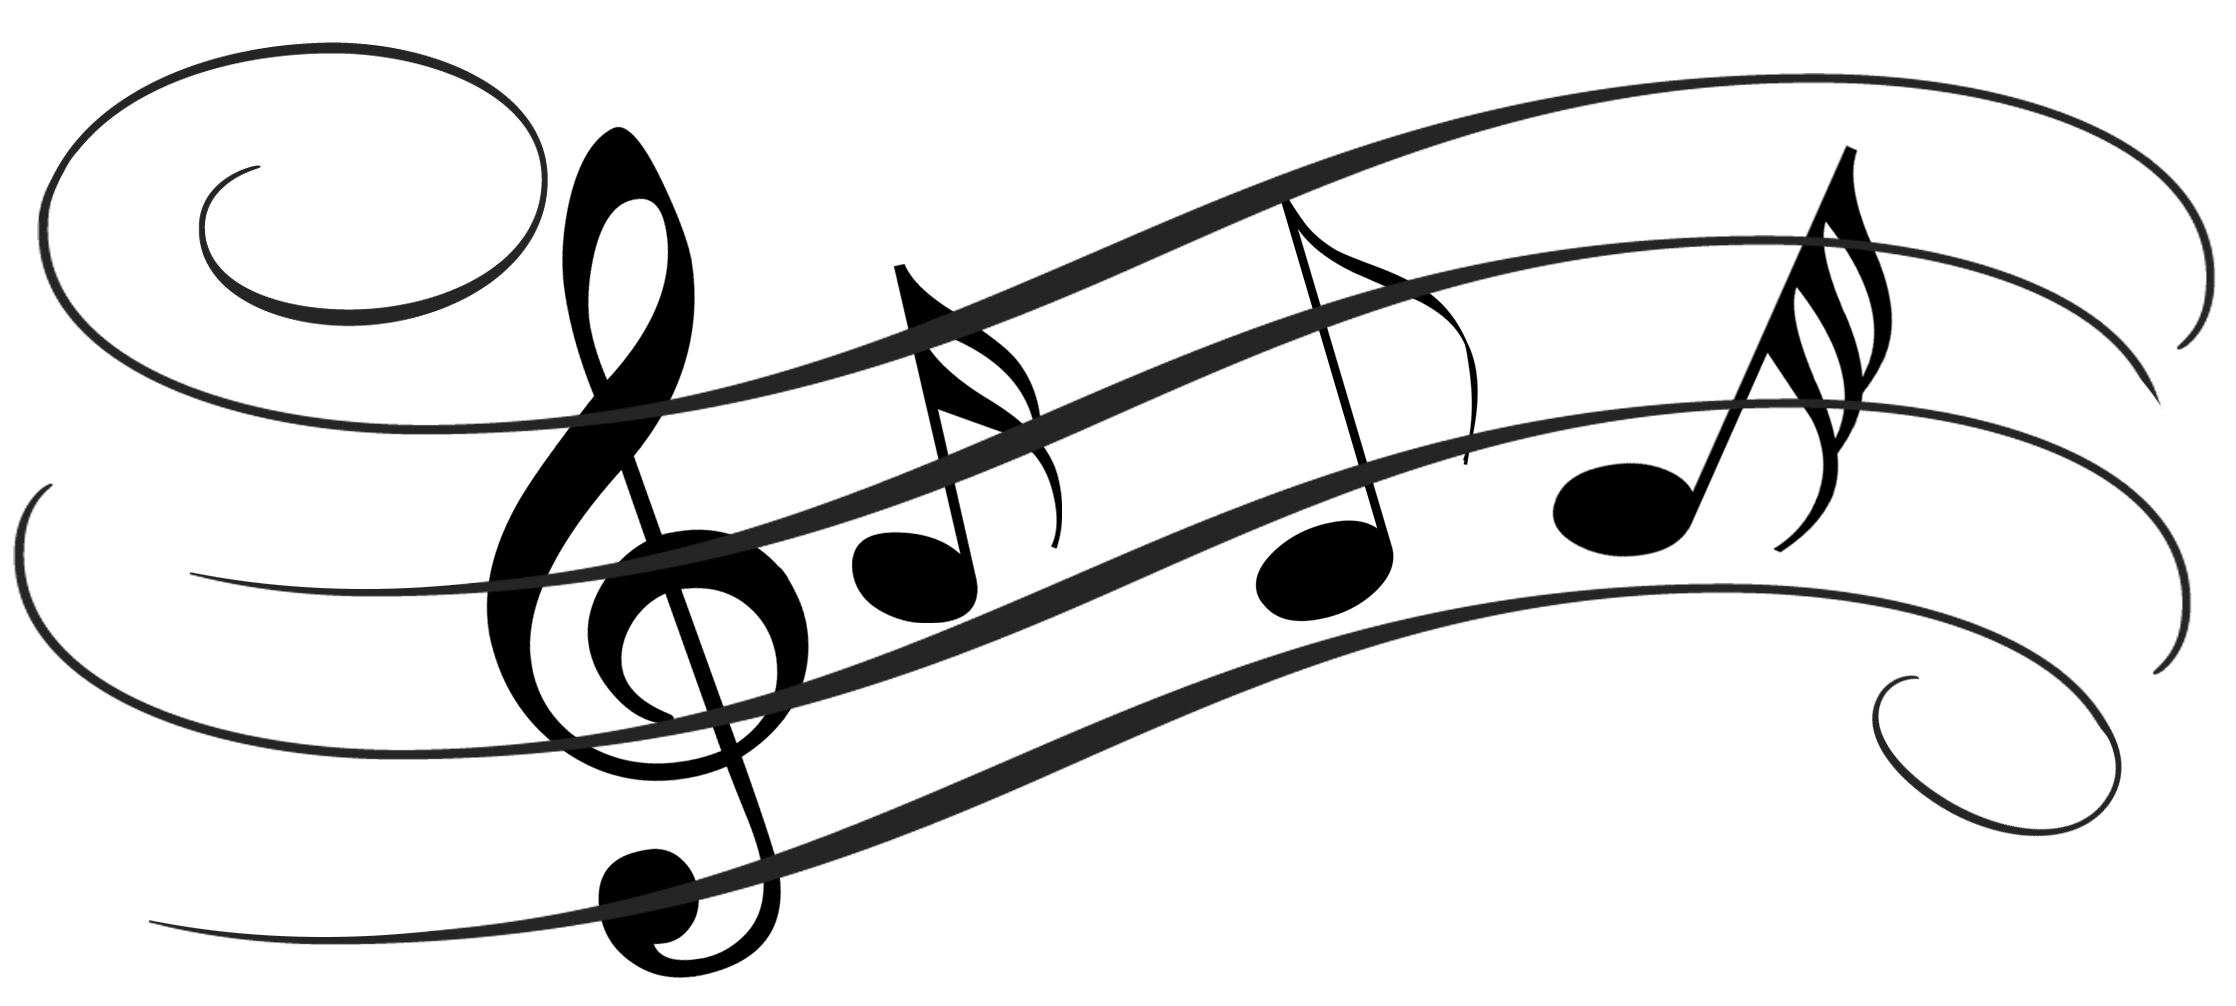 Music notes on staff clipart free images